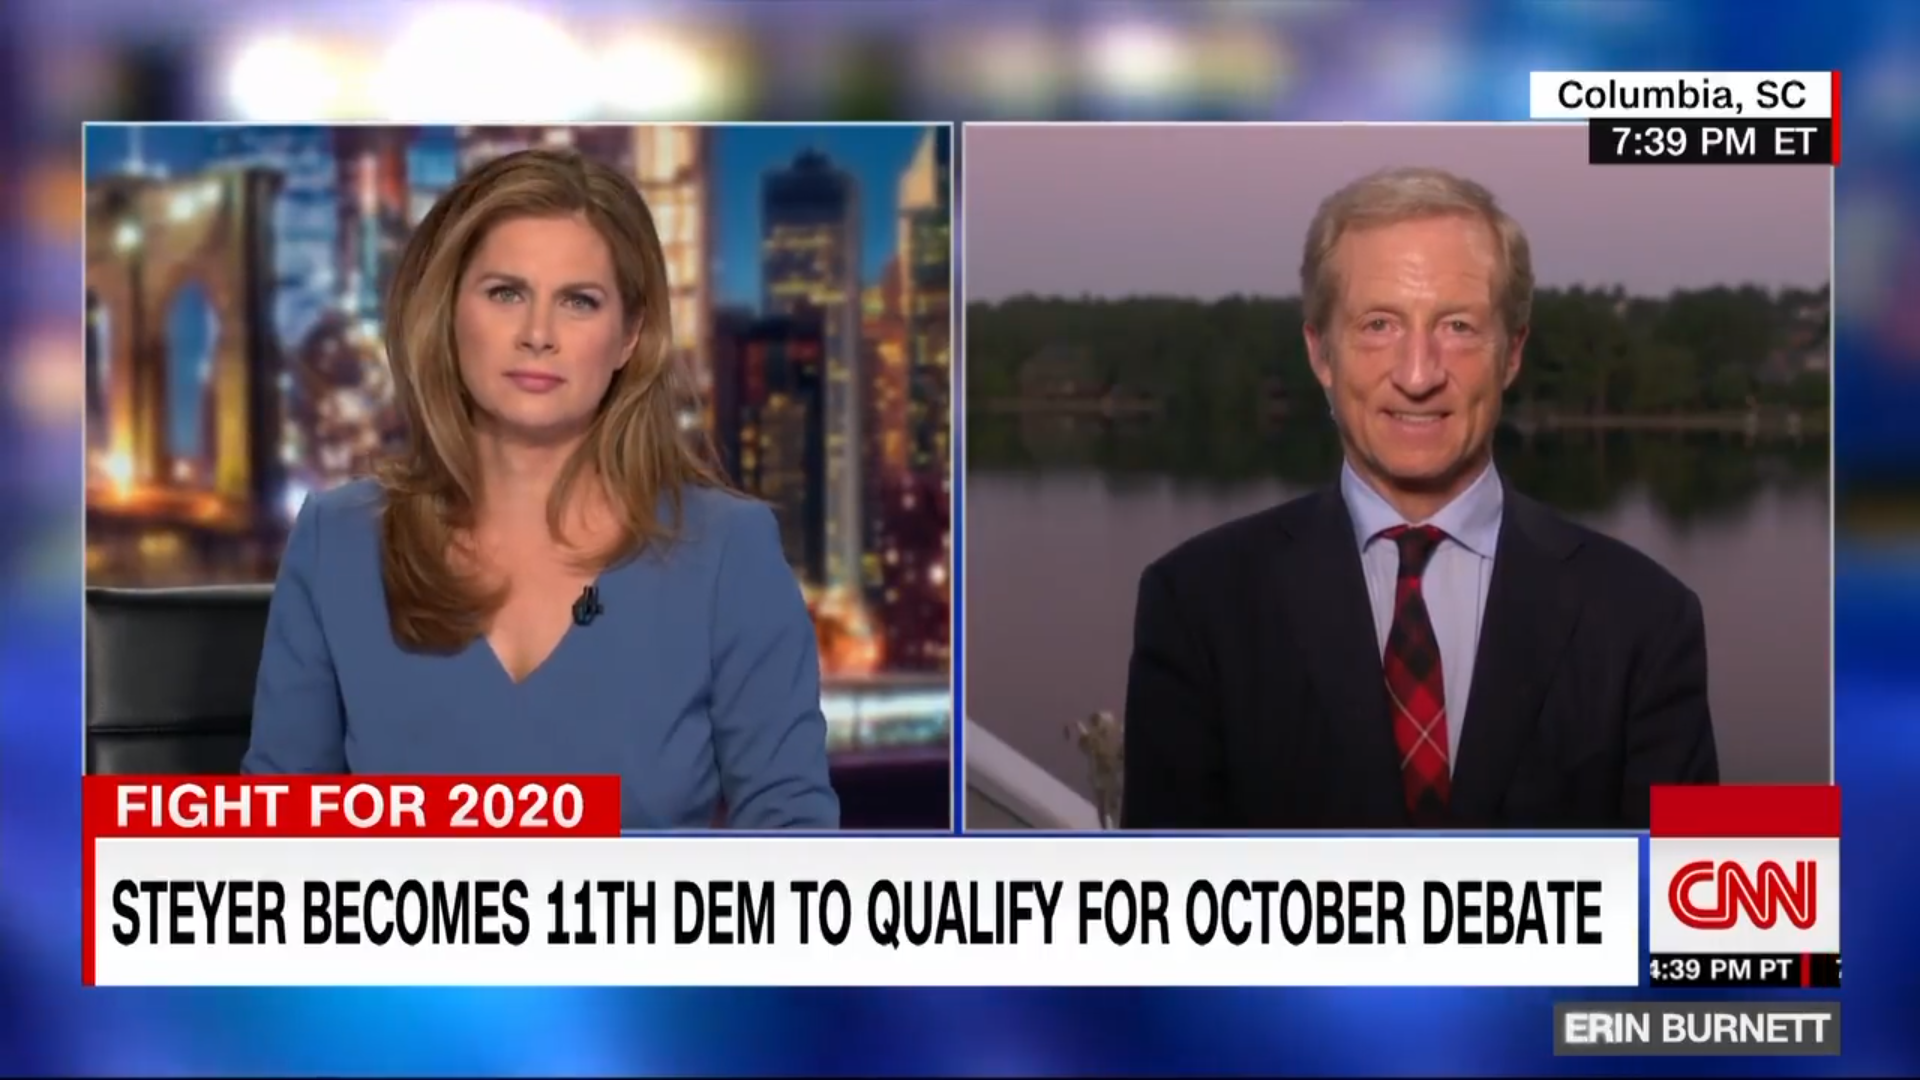 GTT1109Shoot4 Go To Team Columbia Crew | CNN   Tom Steyer Interview